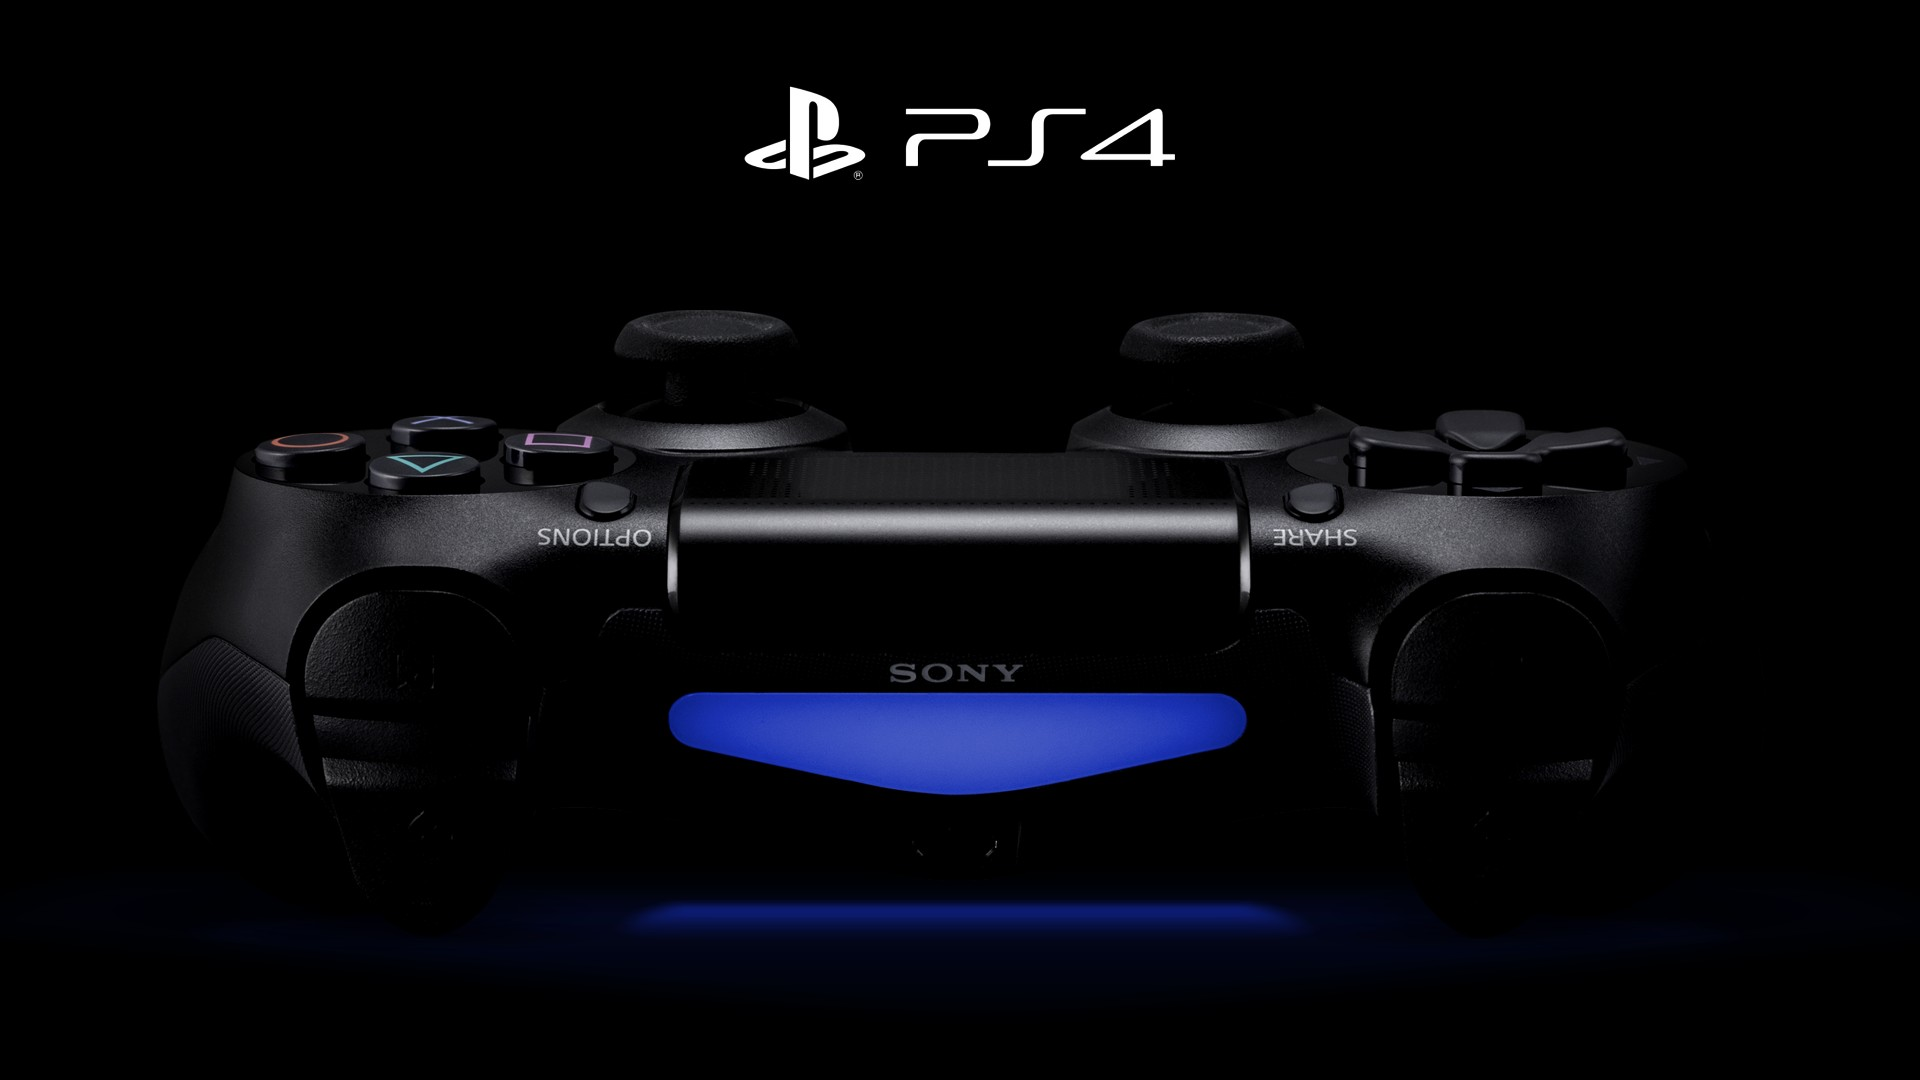 PS4-Controller-Background-HD-Wallpaper